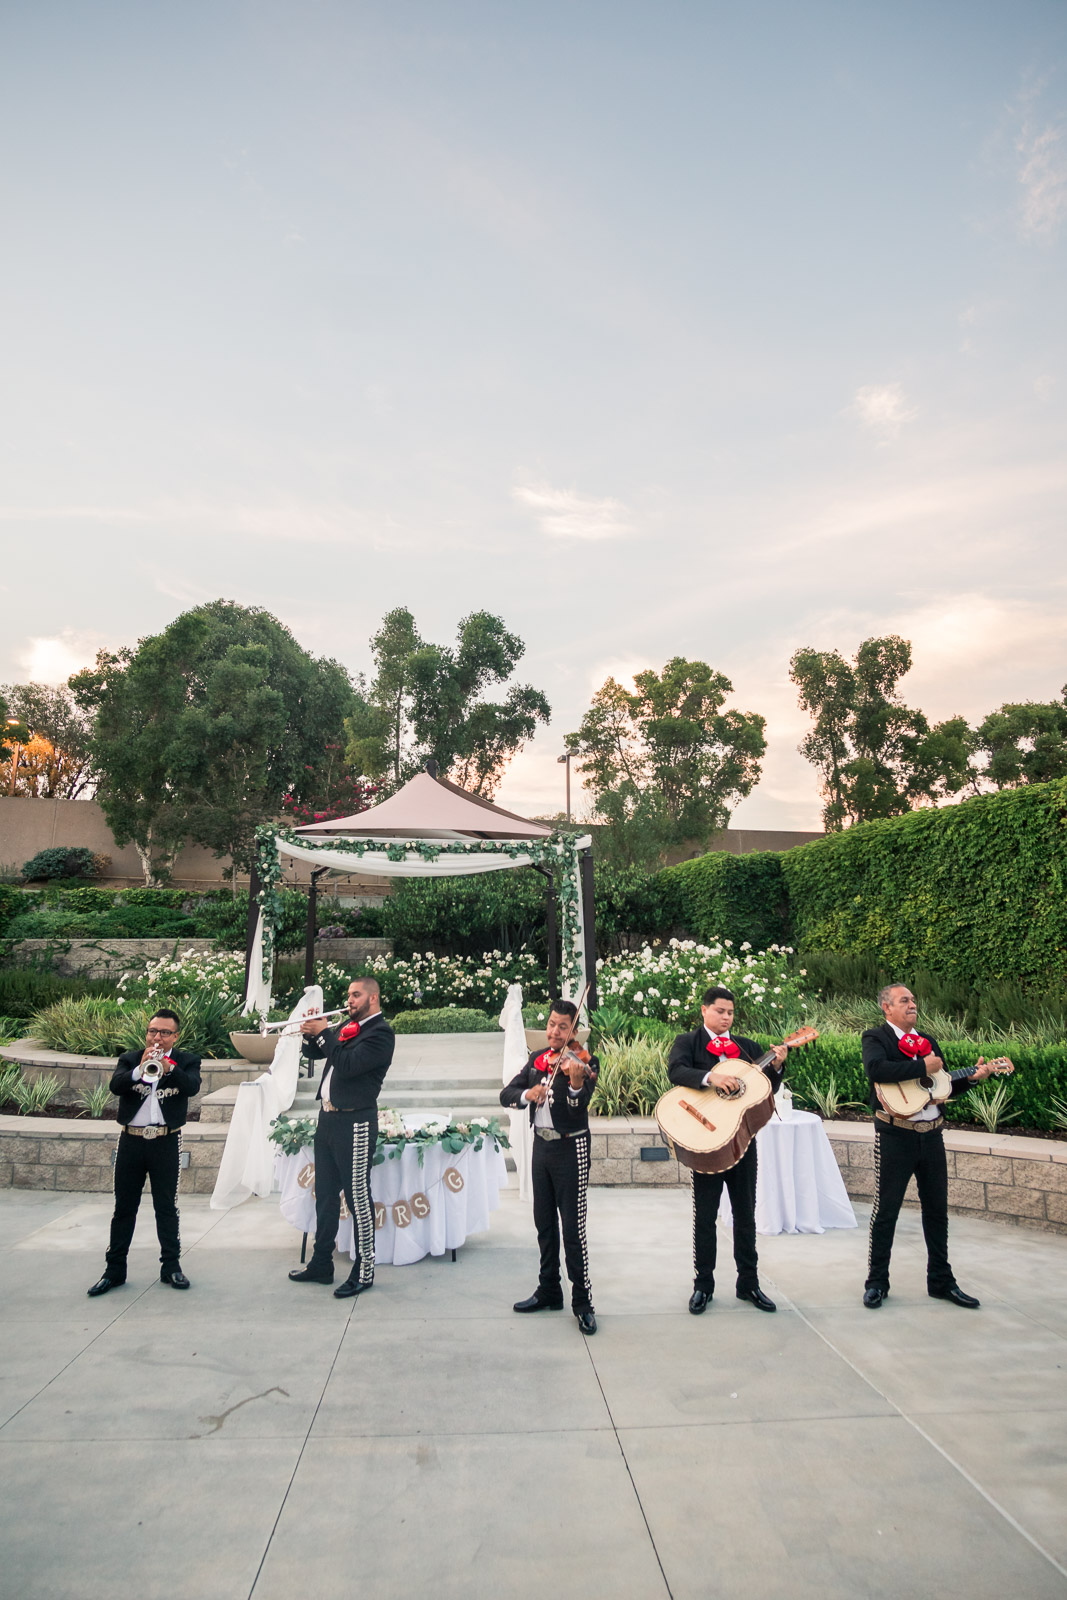 362_Angel-Brea-Orange-County_Joseph-Barber-Wedding-Photography.jpg